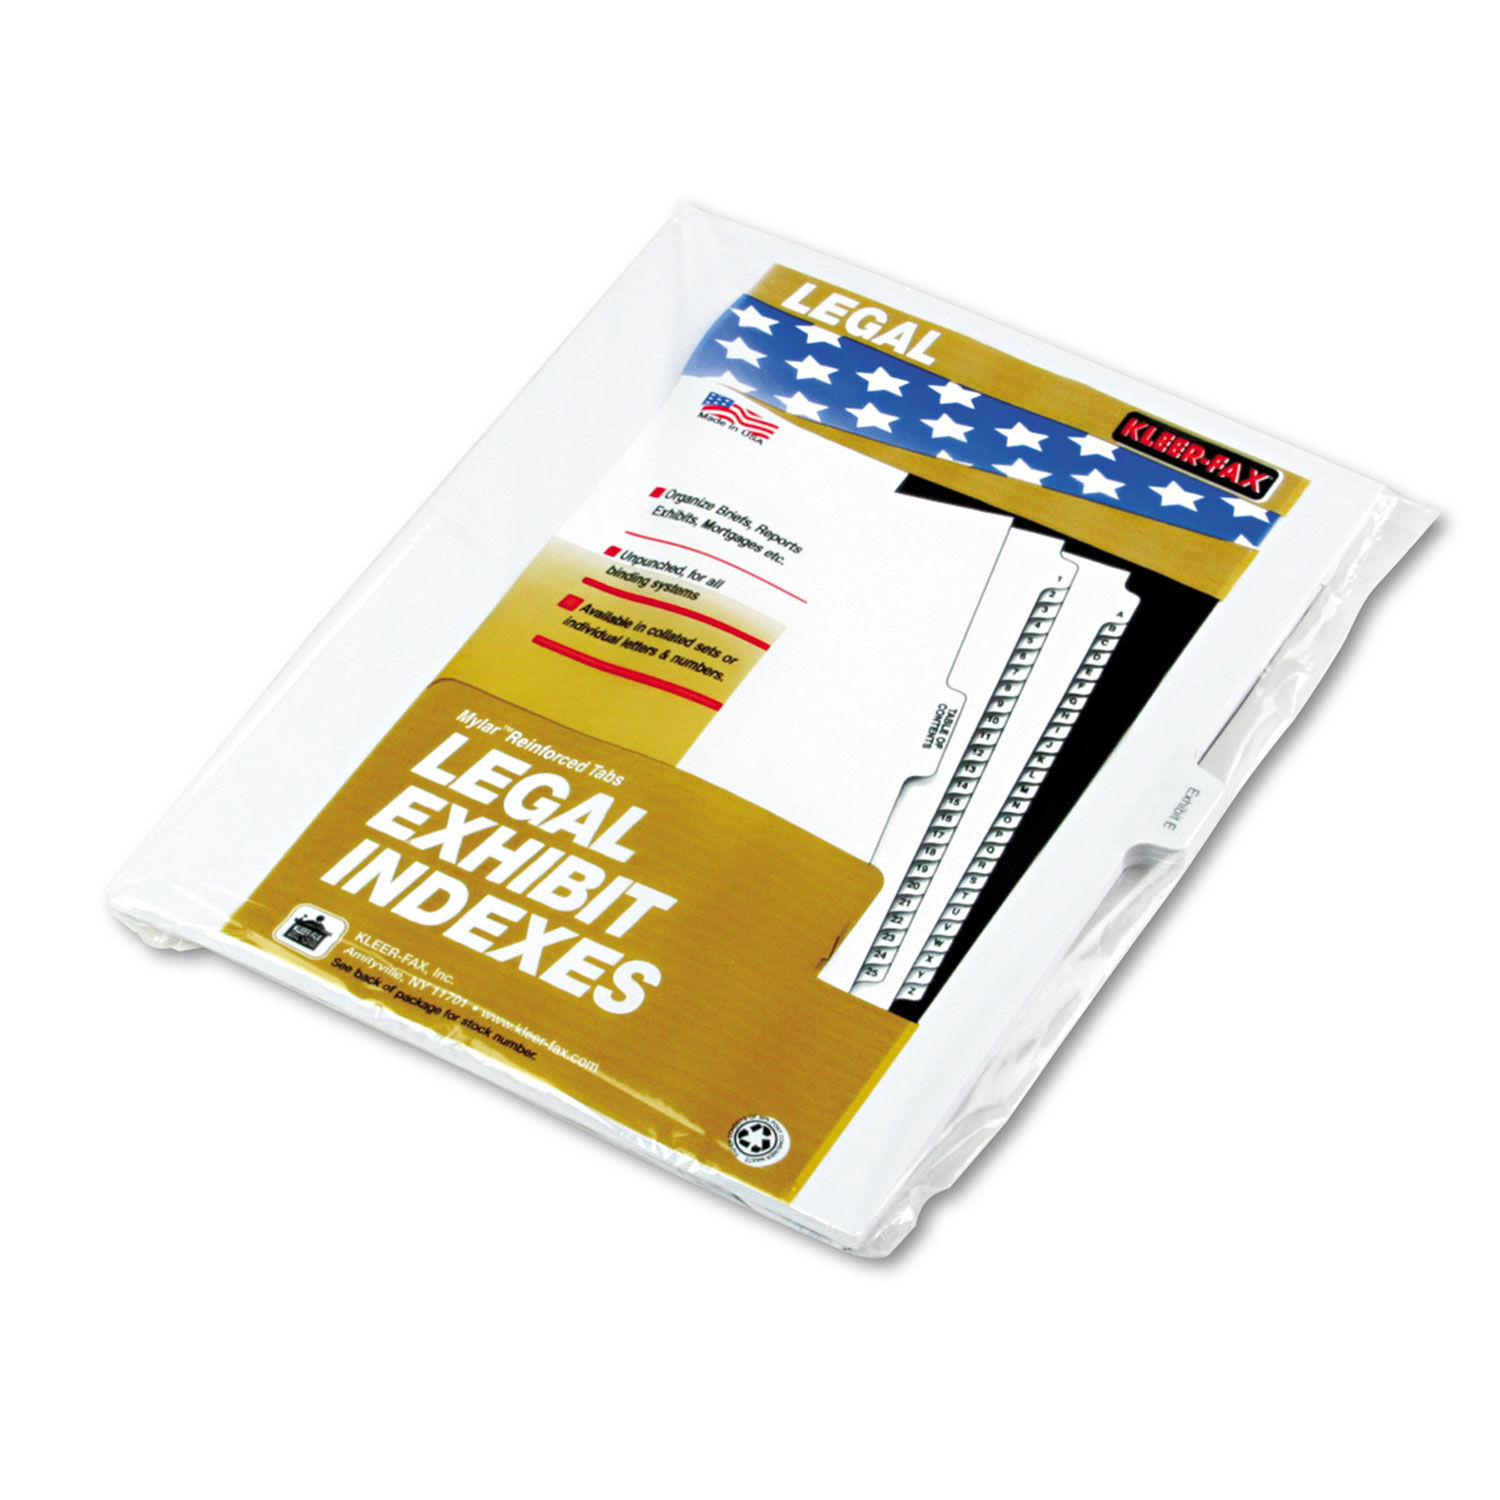 "90000 Series Legal Exhibit Index Dividers, 1 10 Cut Tab, ""Exhibit E\ by Kleer-Fax"